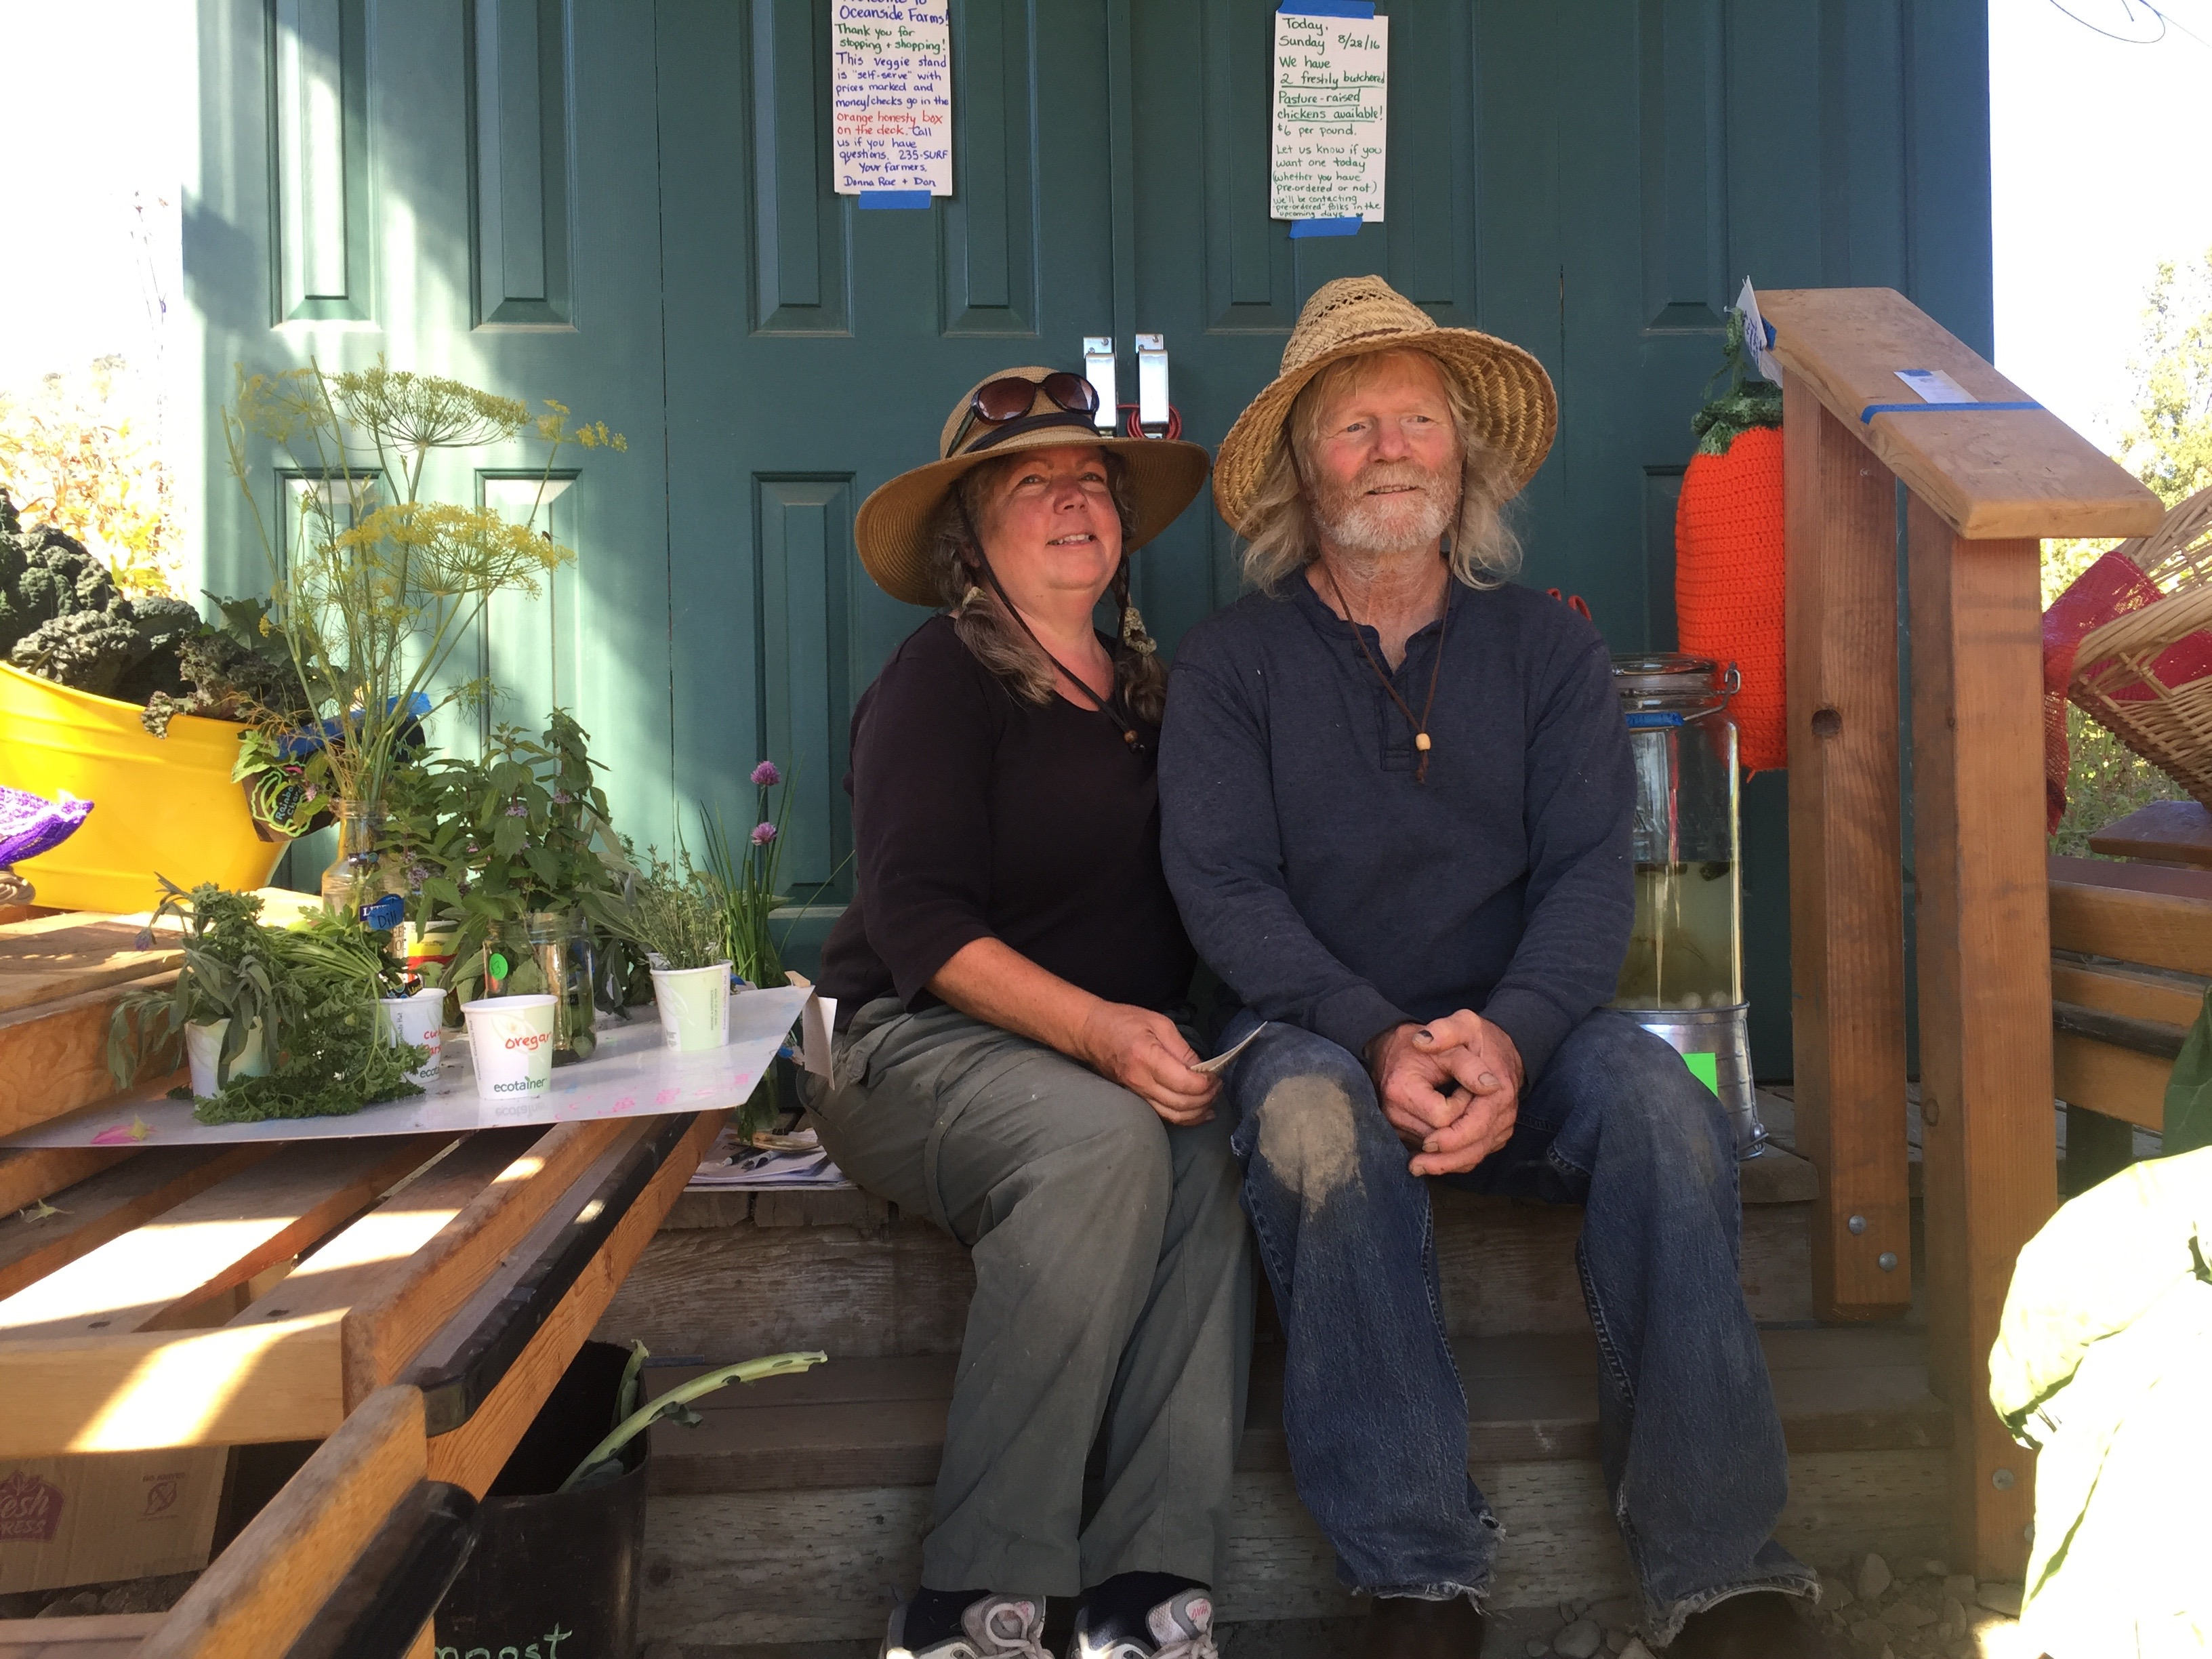 Over the last three years, Donna Rae Faulkner and Don McNamara have been building a farm with help from a cost share program through the USDA's Natural Resource Conservation Service. (Photo by Emily Schwing, Northwest News Network)